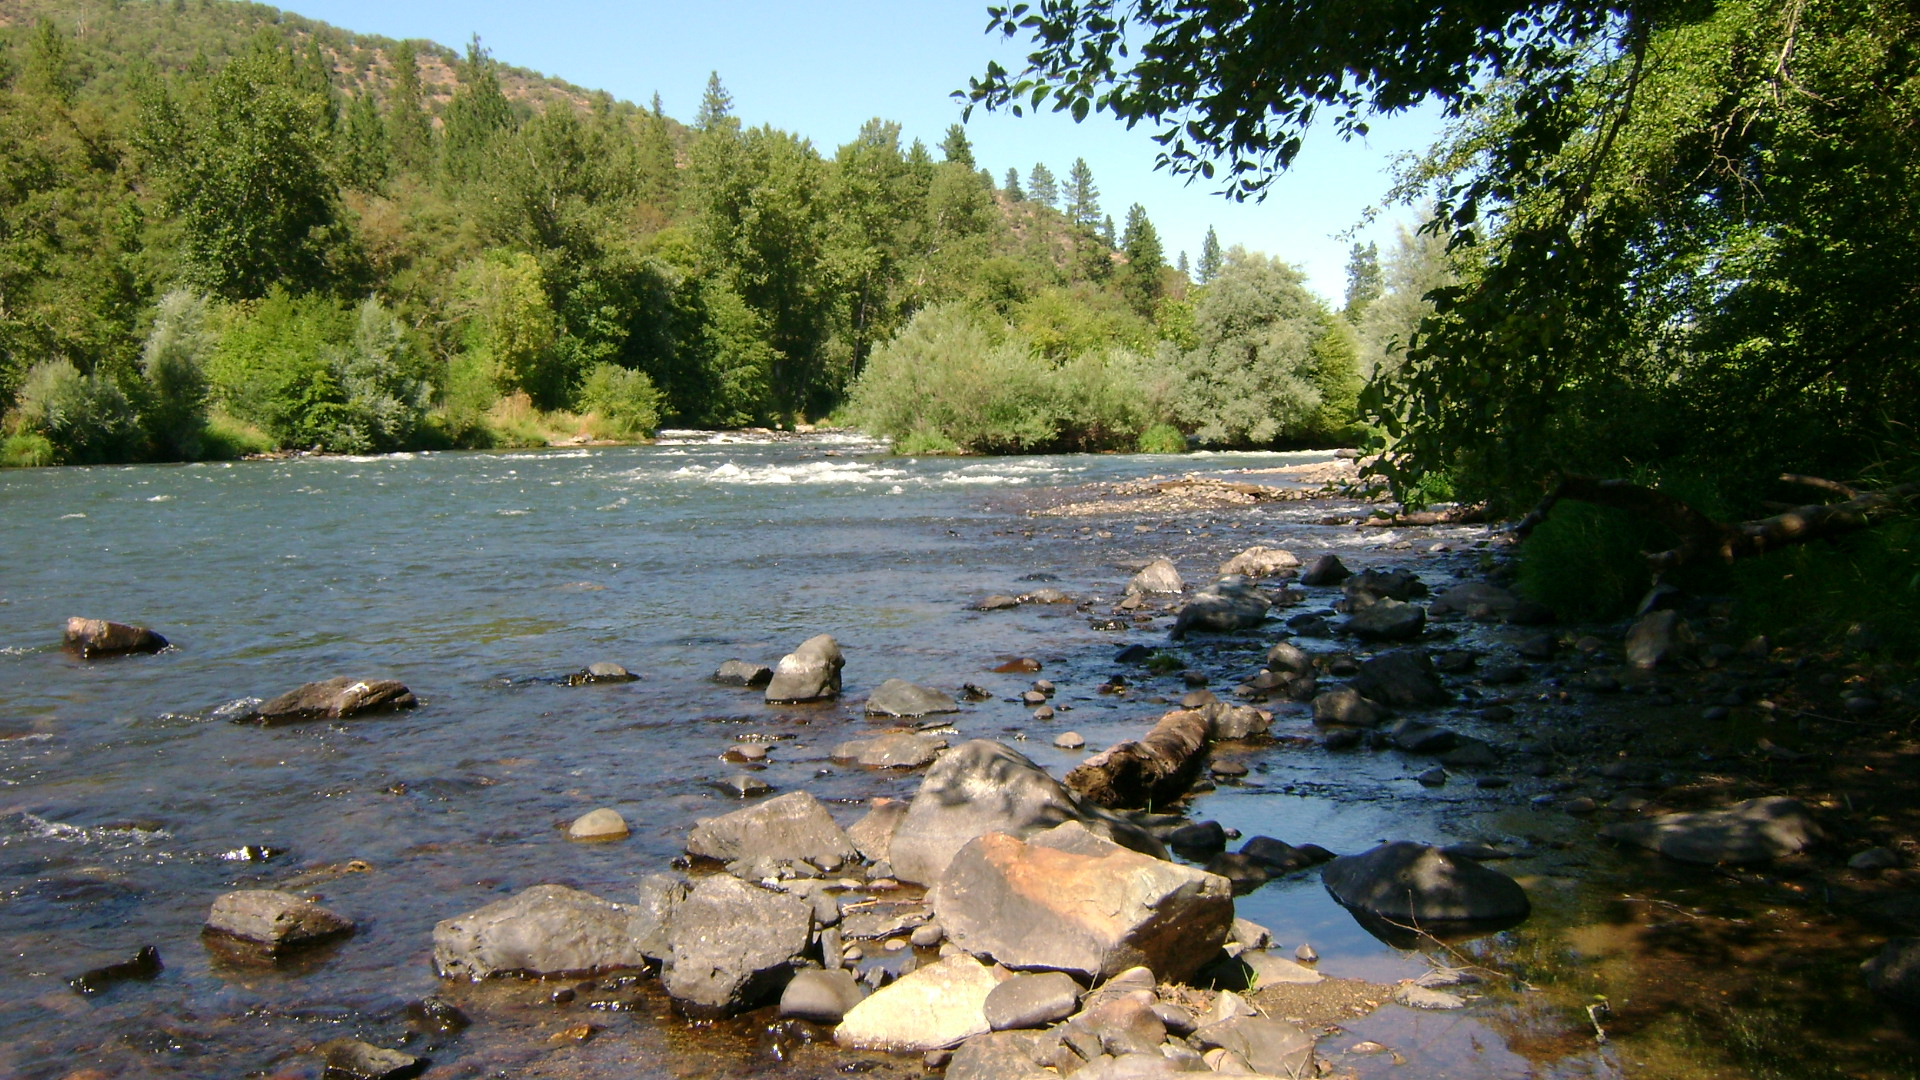 gold dredging opportunities on the Rogue River in southern Oregon